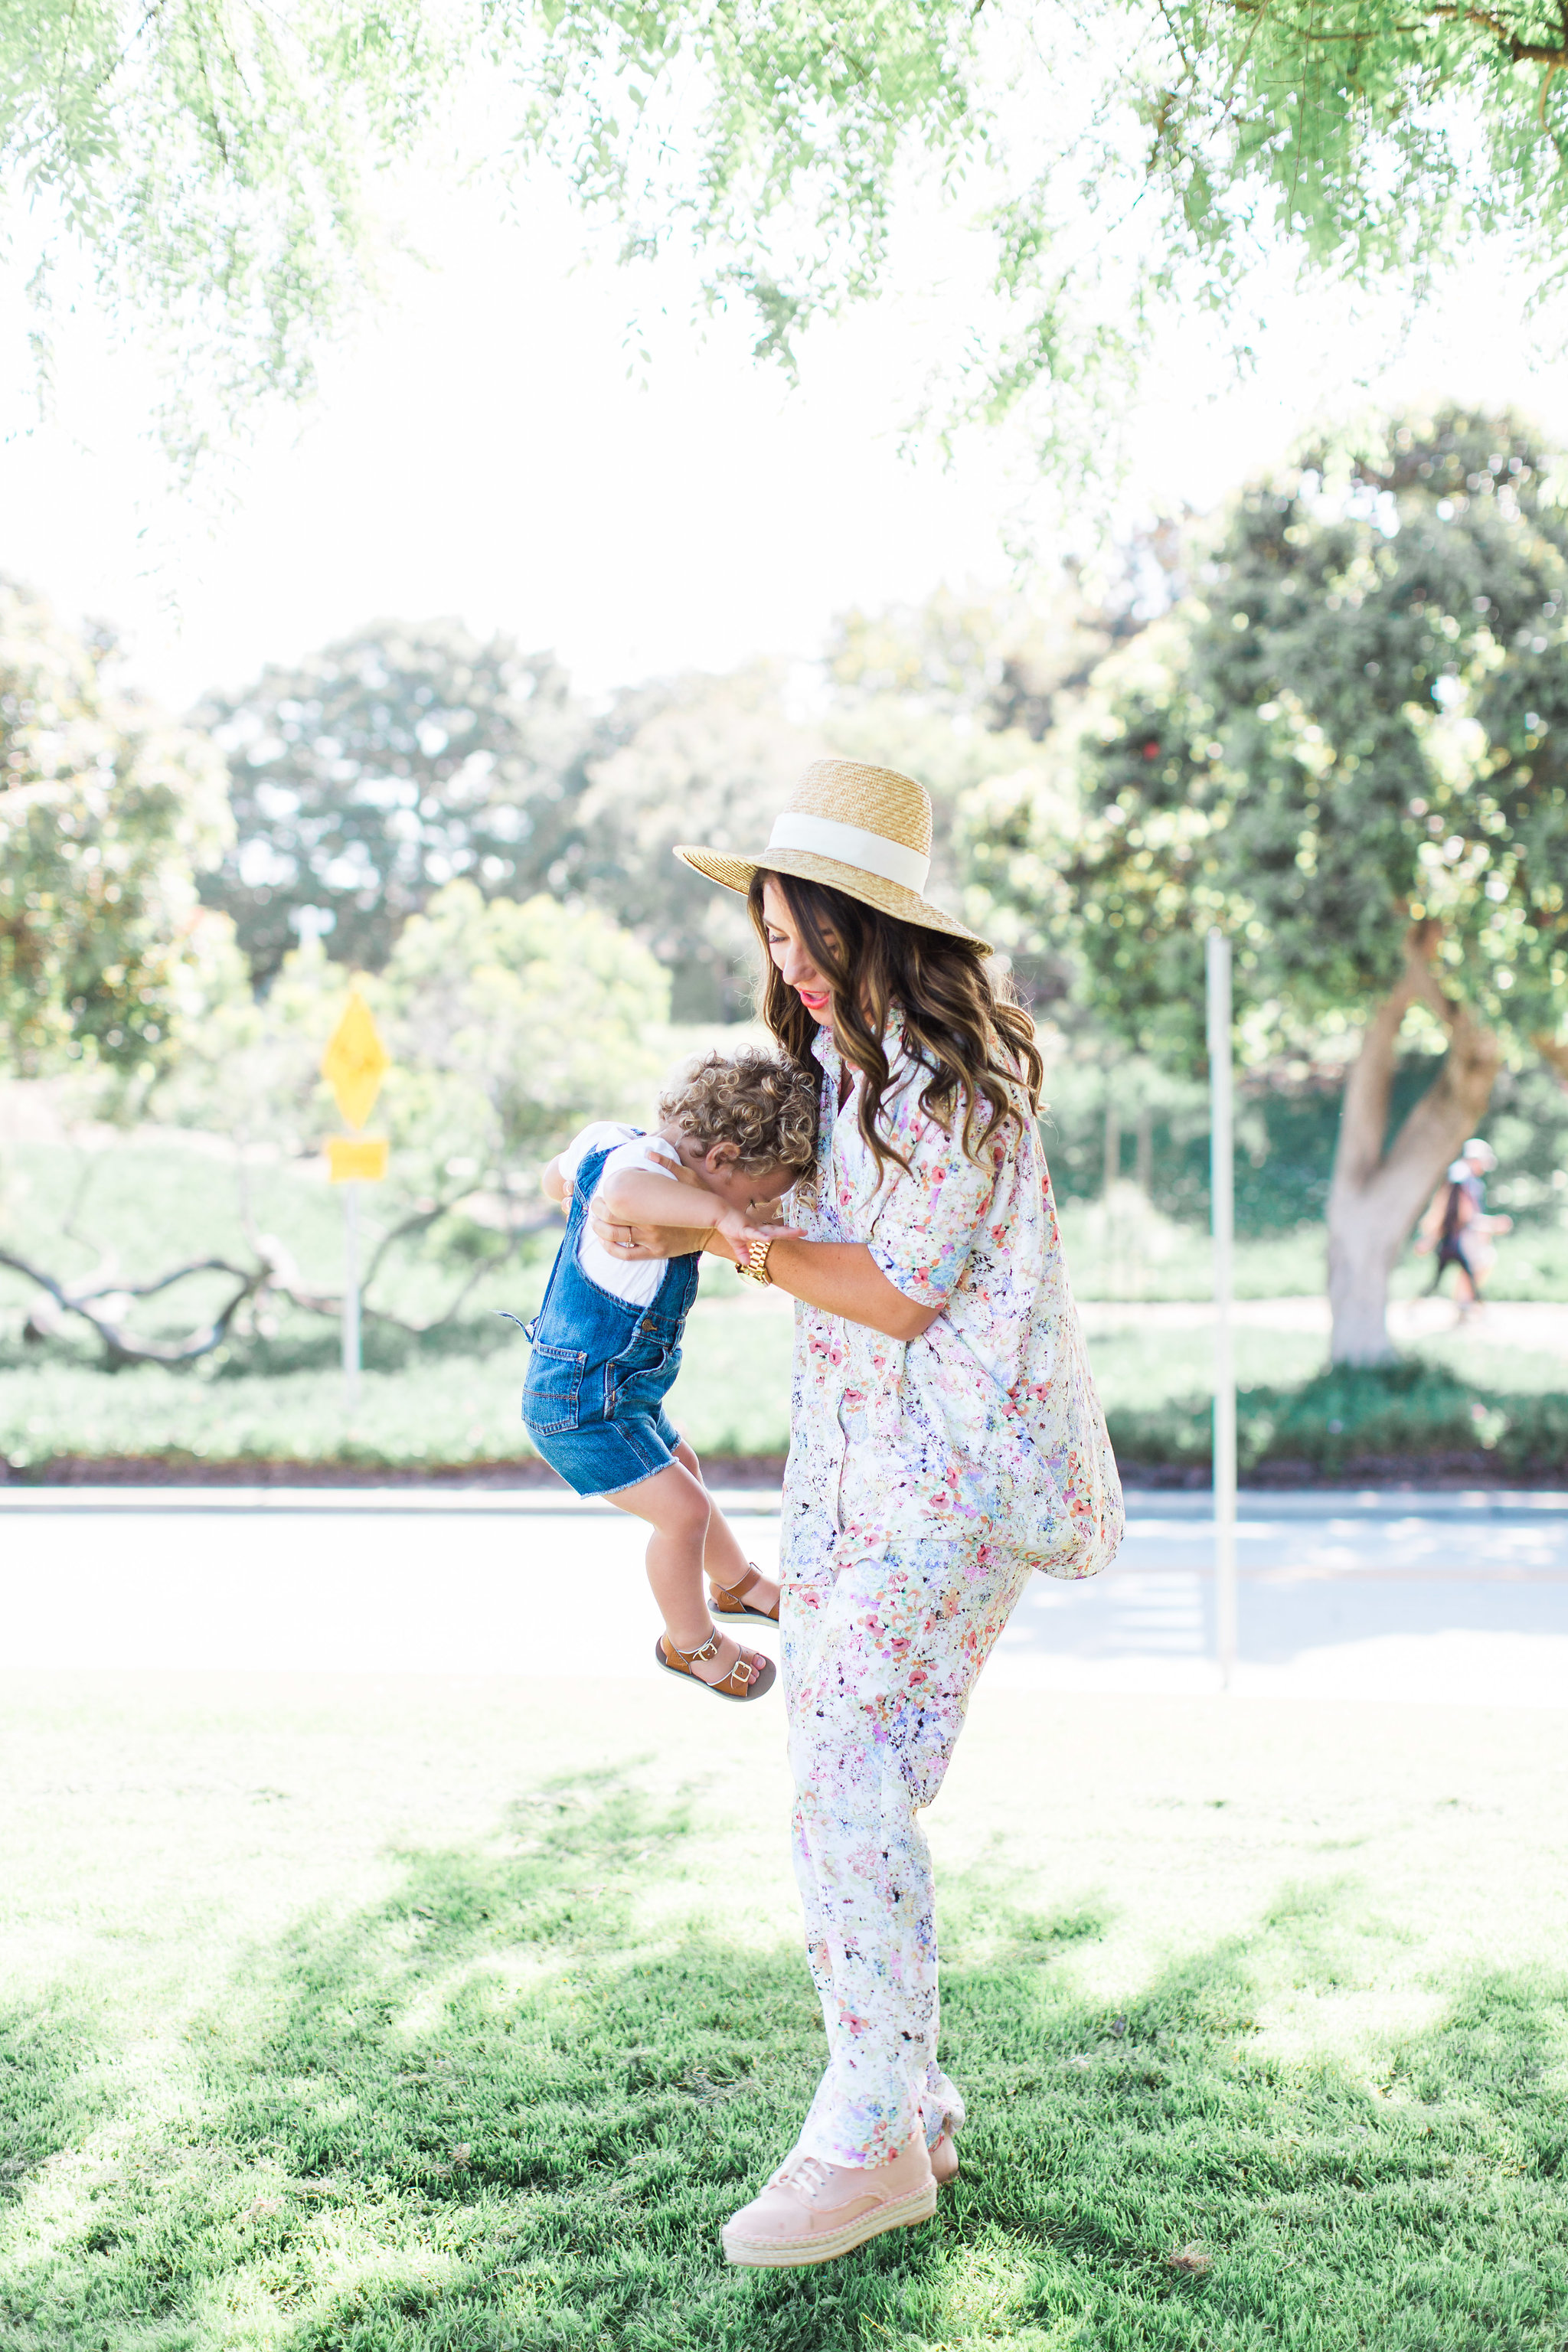 sonnet james pantsuit for playful moms